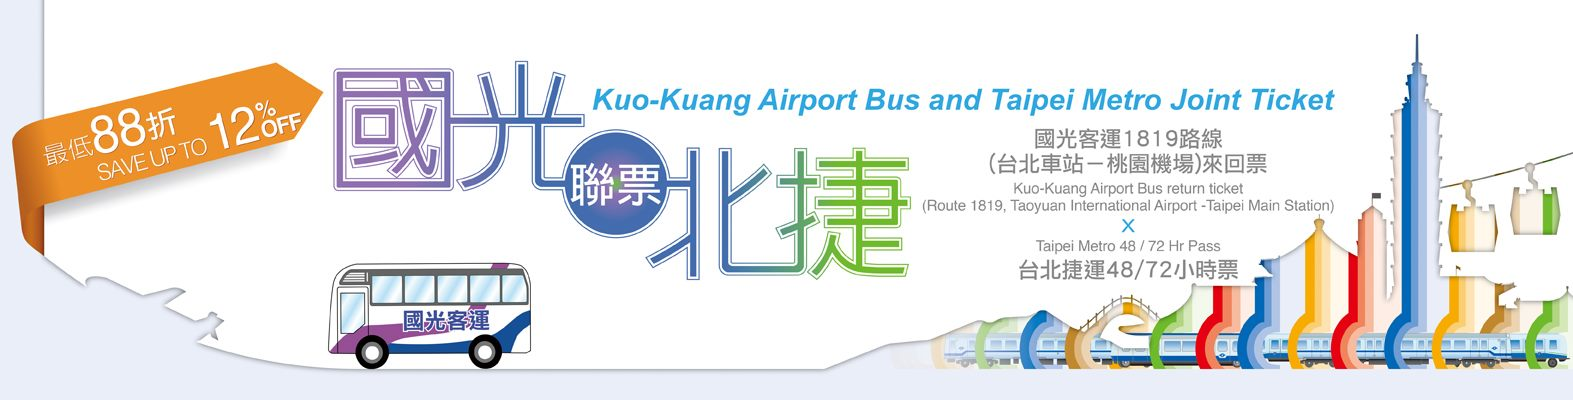 Kuo-Kuang Airport Bus and Taipei Metro Joint Ticket